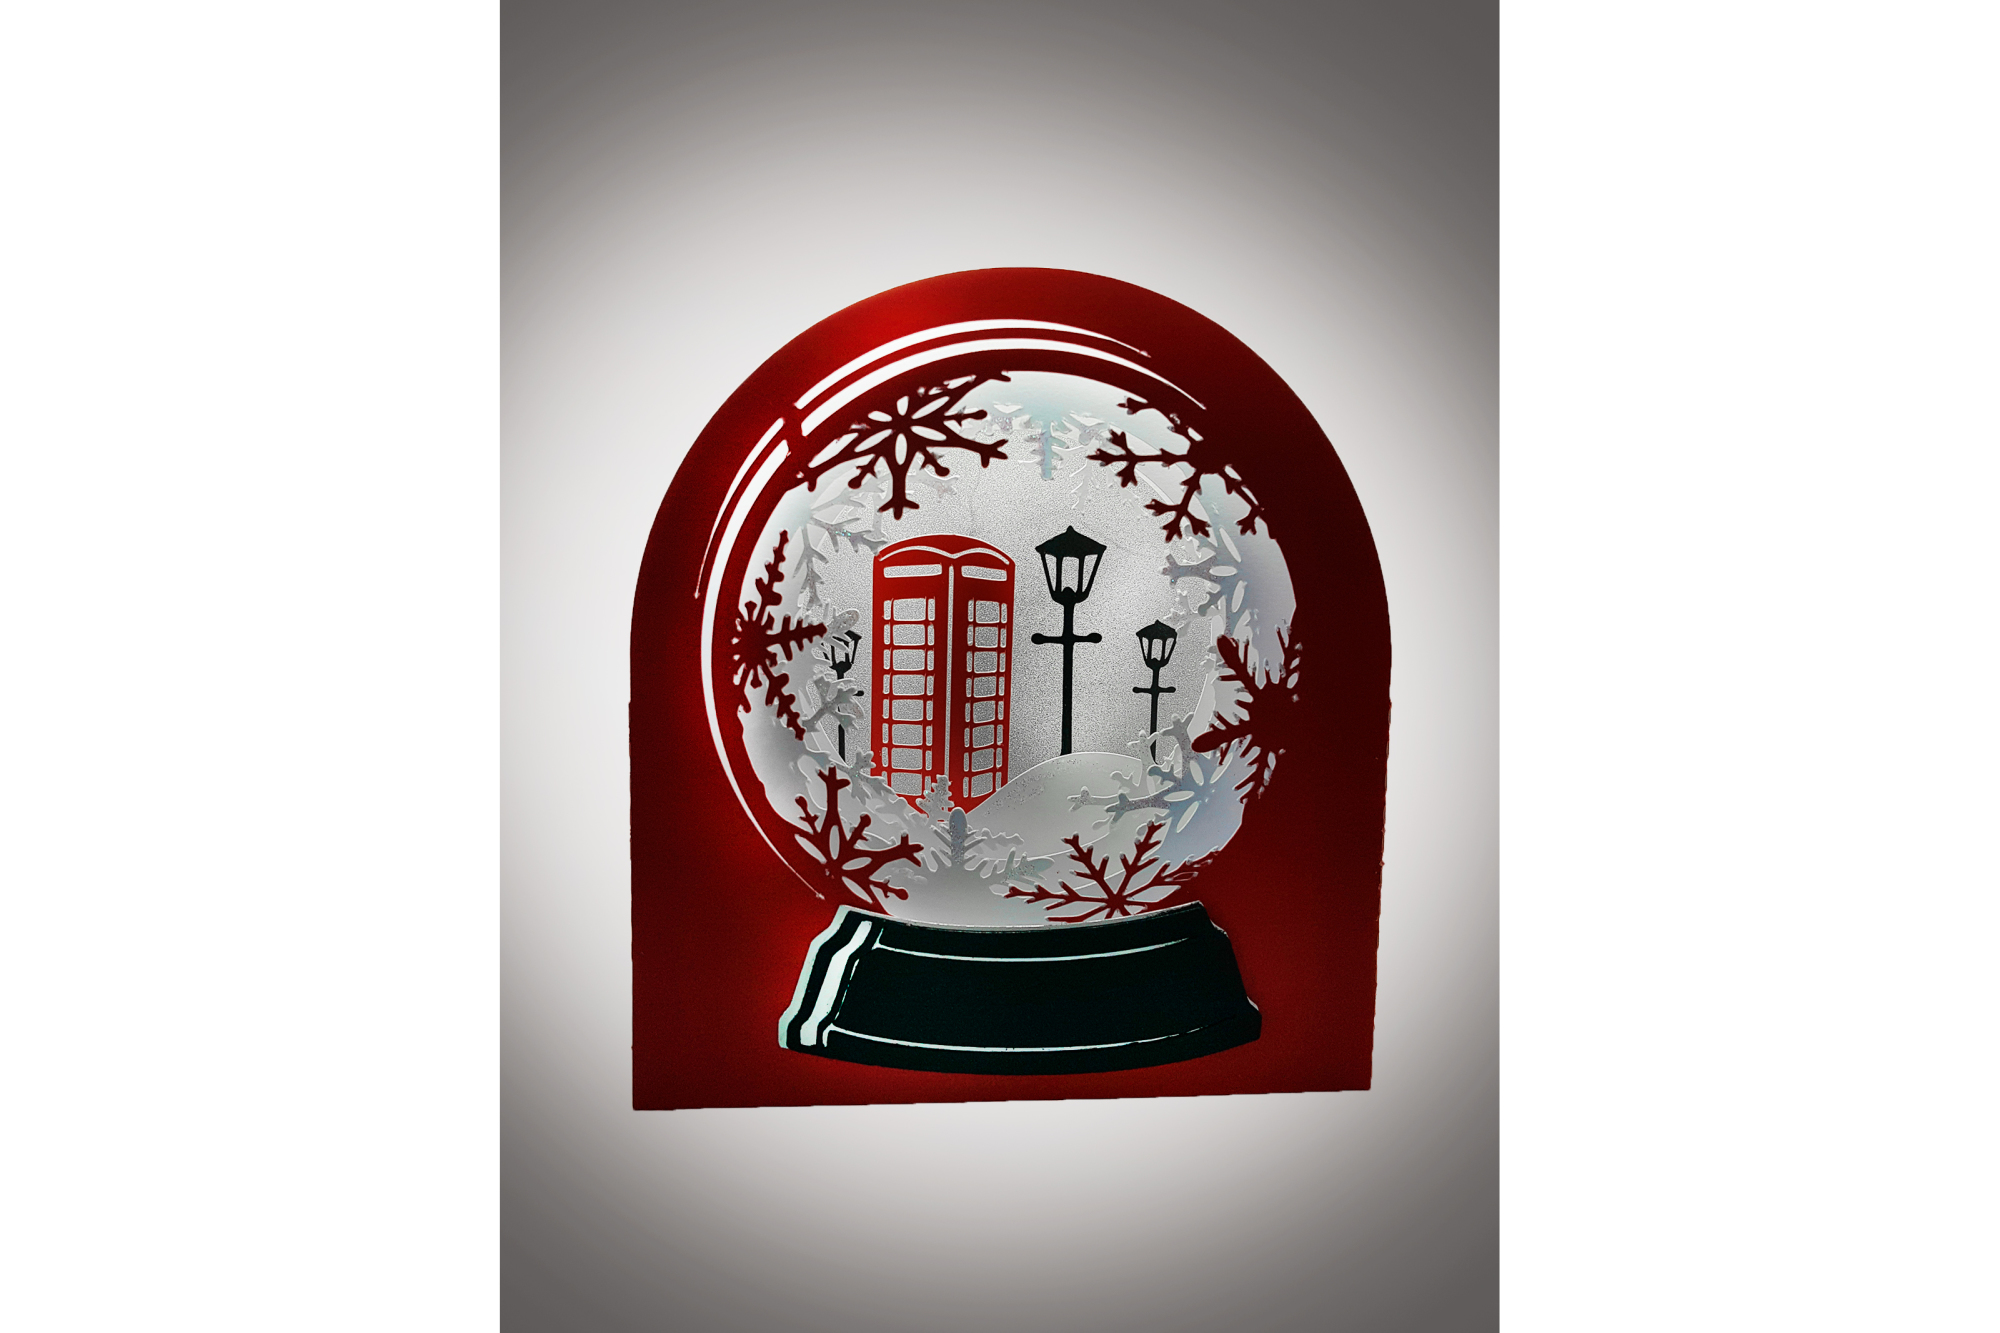 3D Snow Globe Classic Red Telephone Box greetings card example image 2